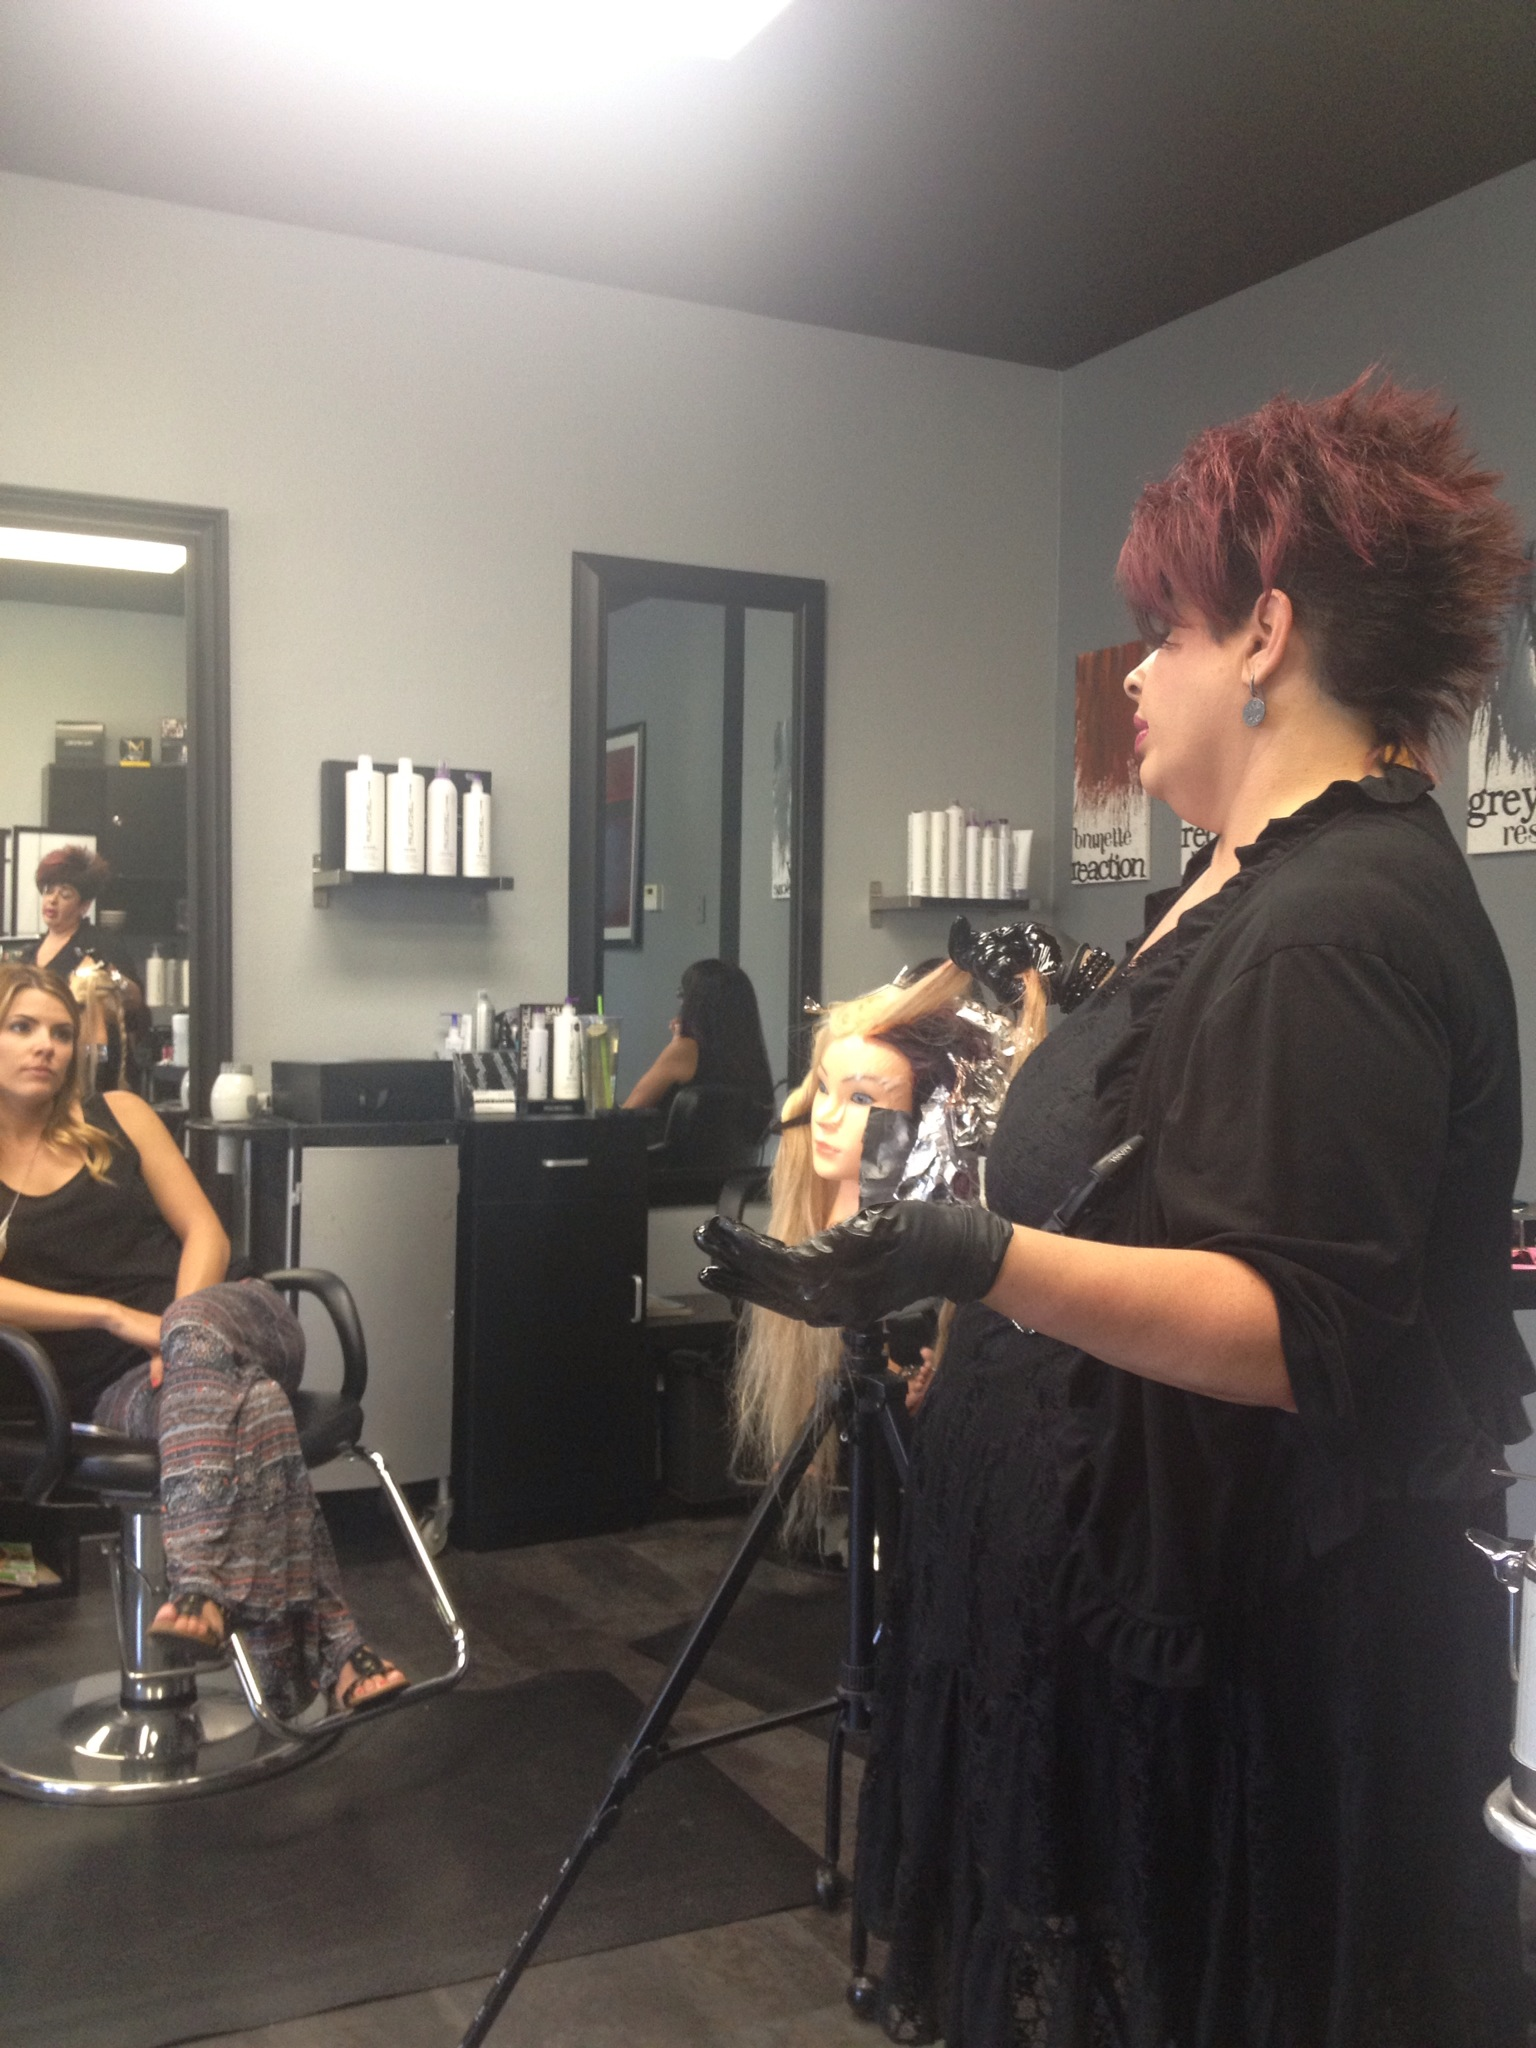 Paul Mitchell Origami collection taught by Paul Mitchell national educator Cindy Bleir